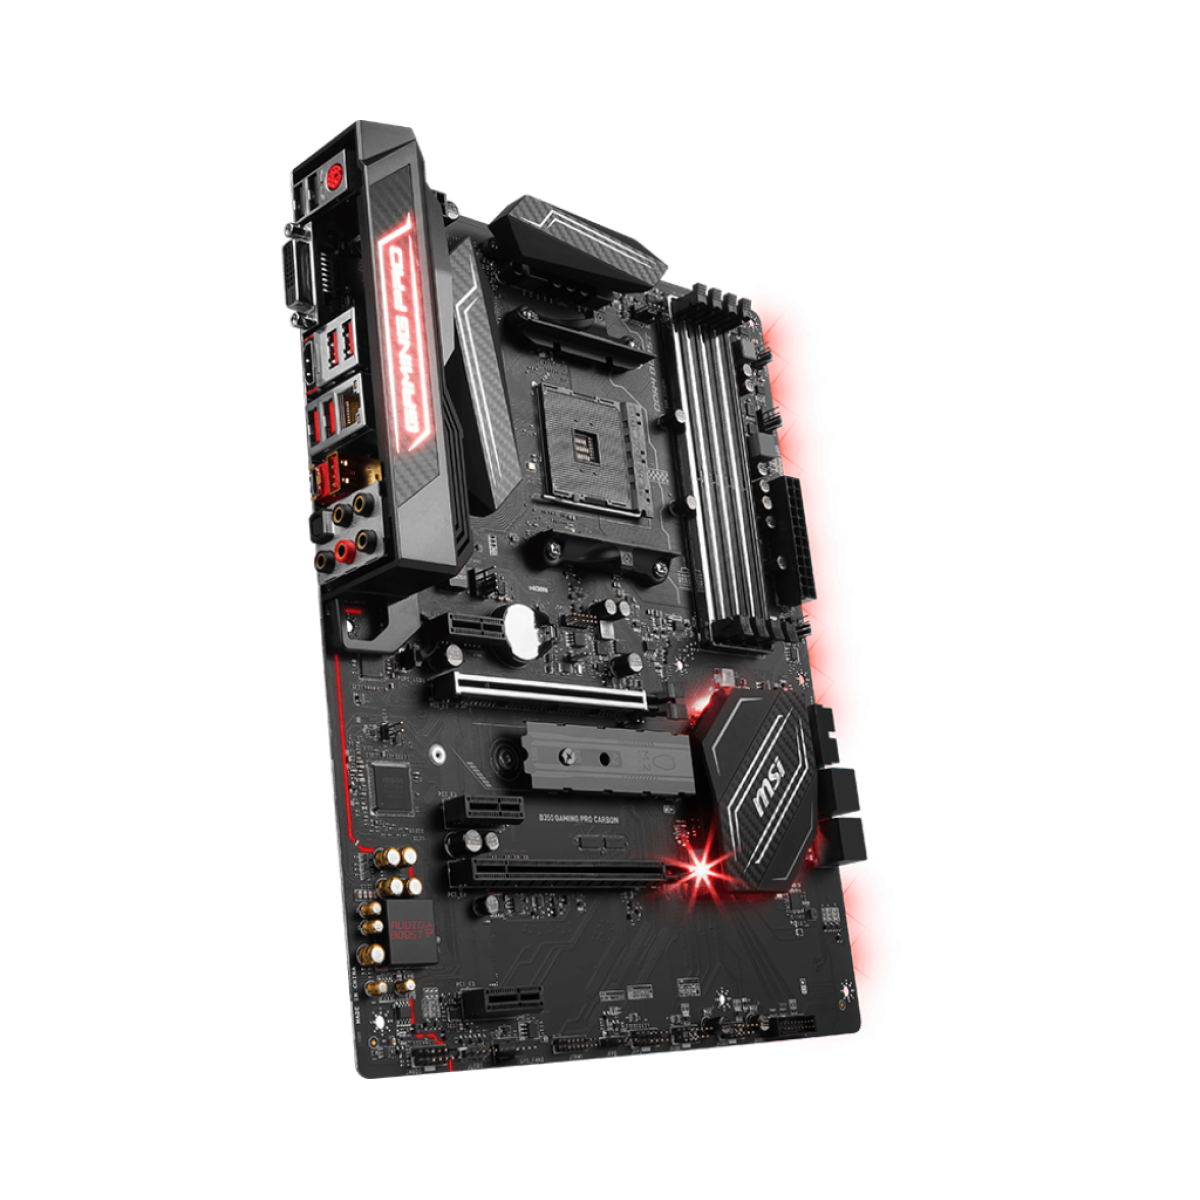 Placa Mãe MSI B350 Gaming PRO Carbon, Chipset B350, AMD AM4, ATX, DDR4